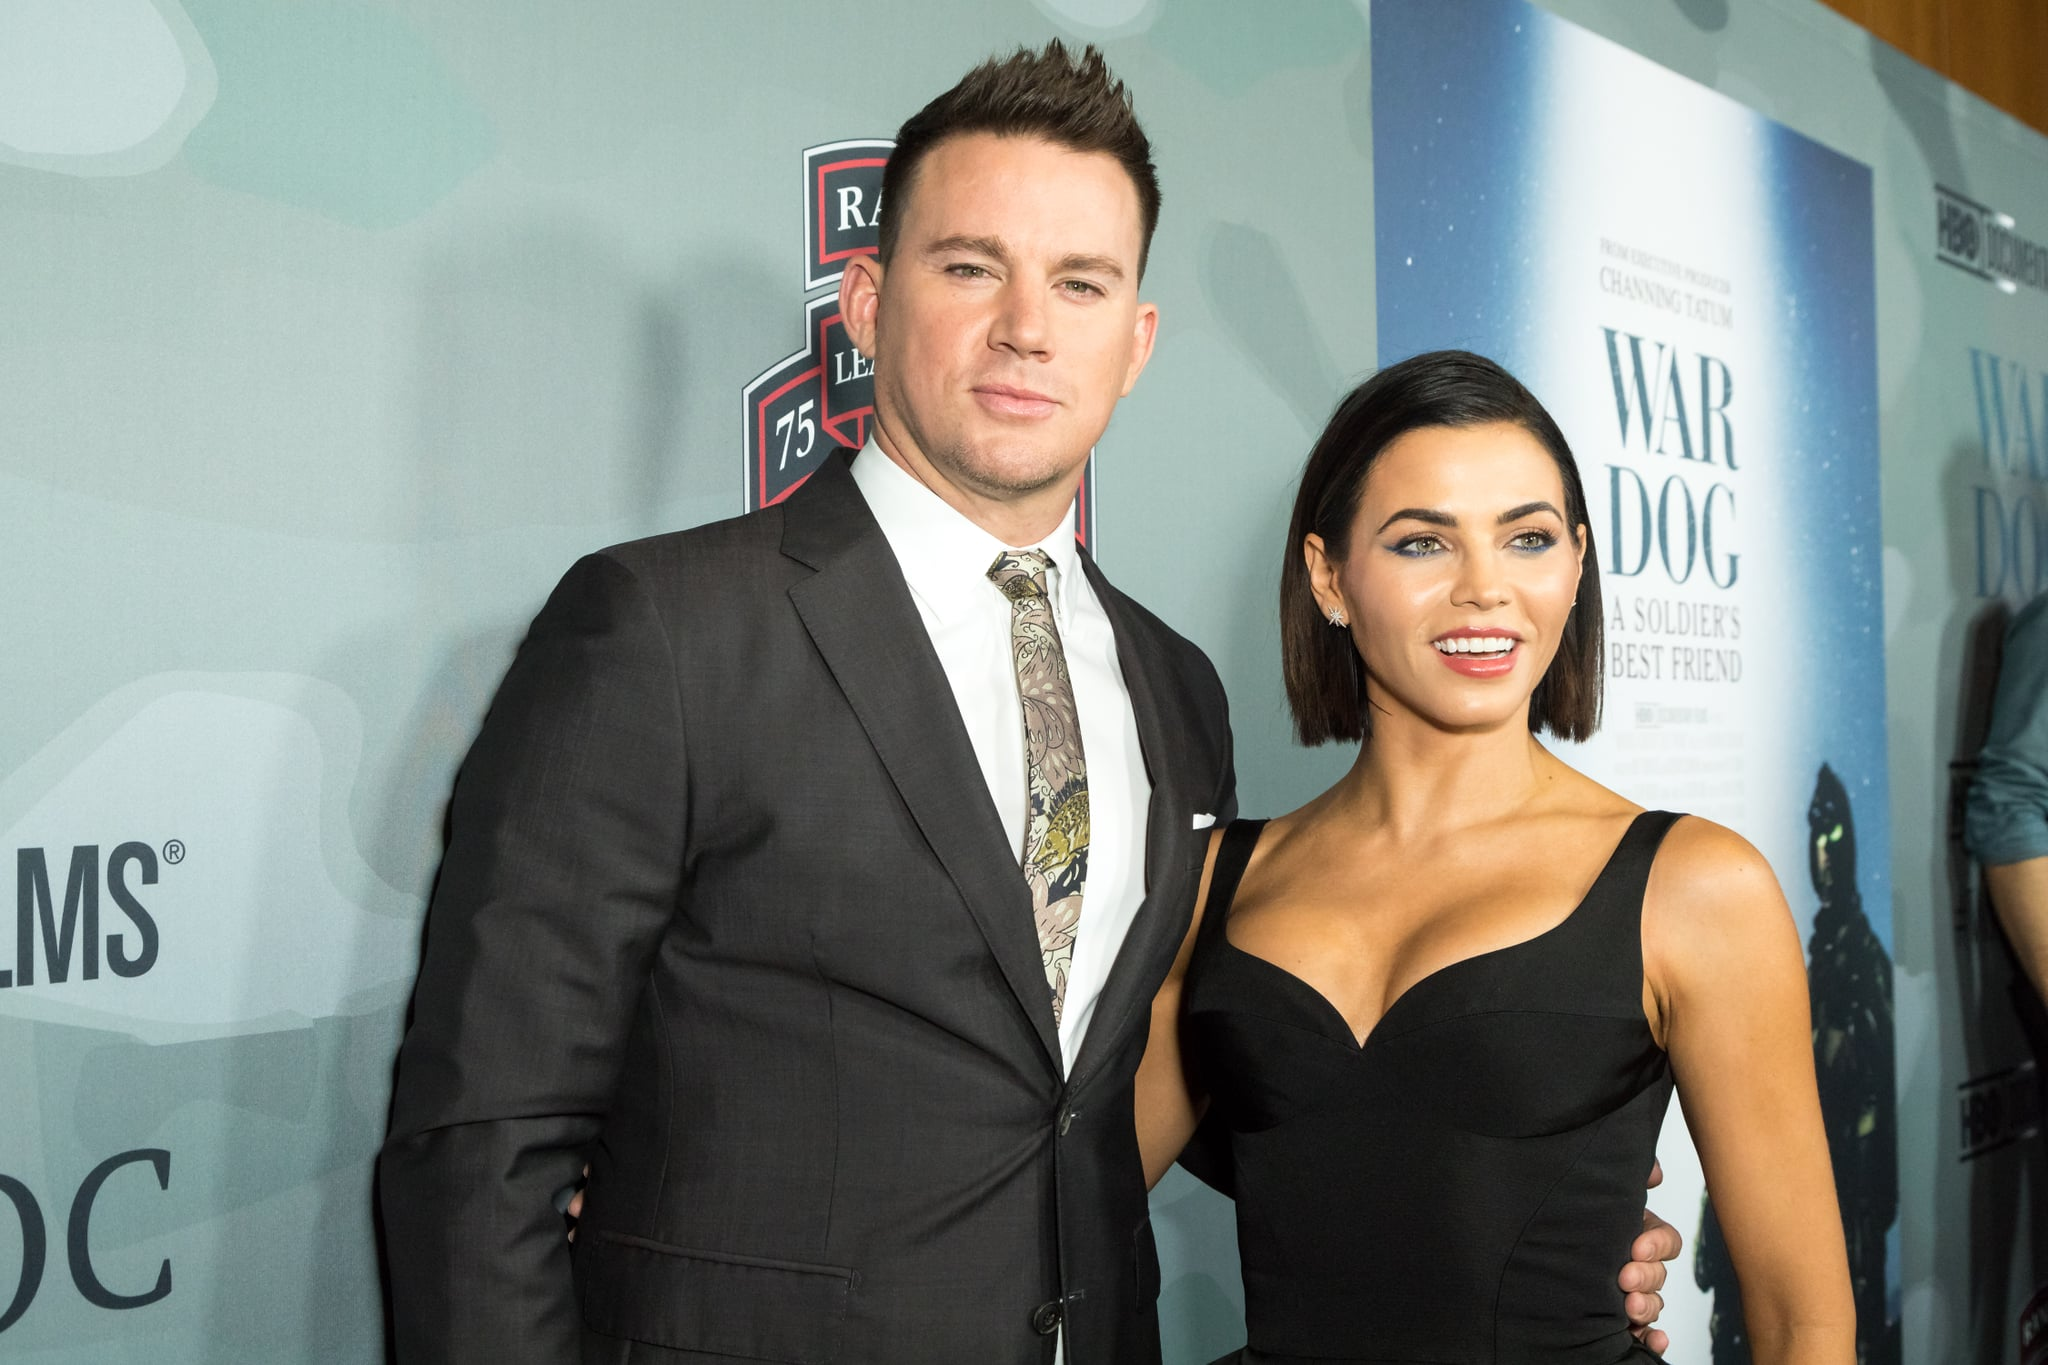 LOS ANGELES, CALIFORNIA - NOVEMBER 06:  Executive Producer Channing Tatum and wife Jenna Dewan Tatum  attend the HBO And Army Ranger Lead The Way Fun Present The Premiere Of